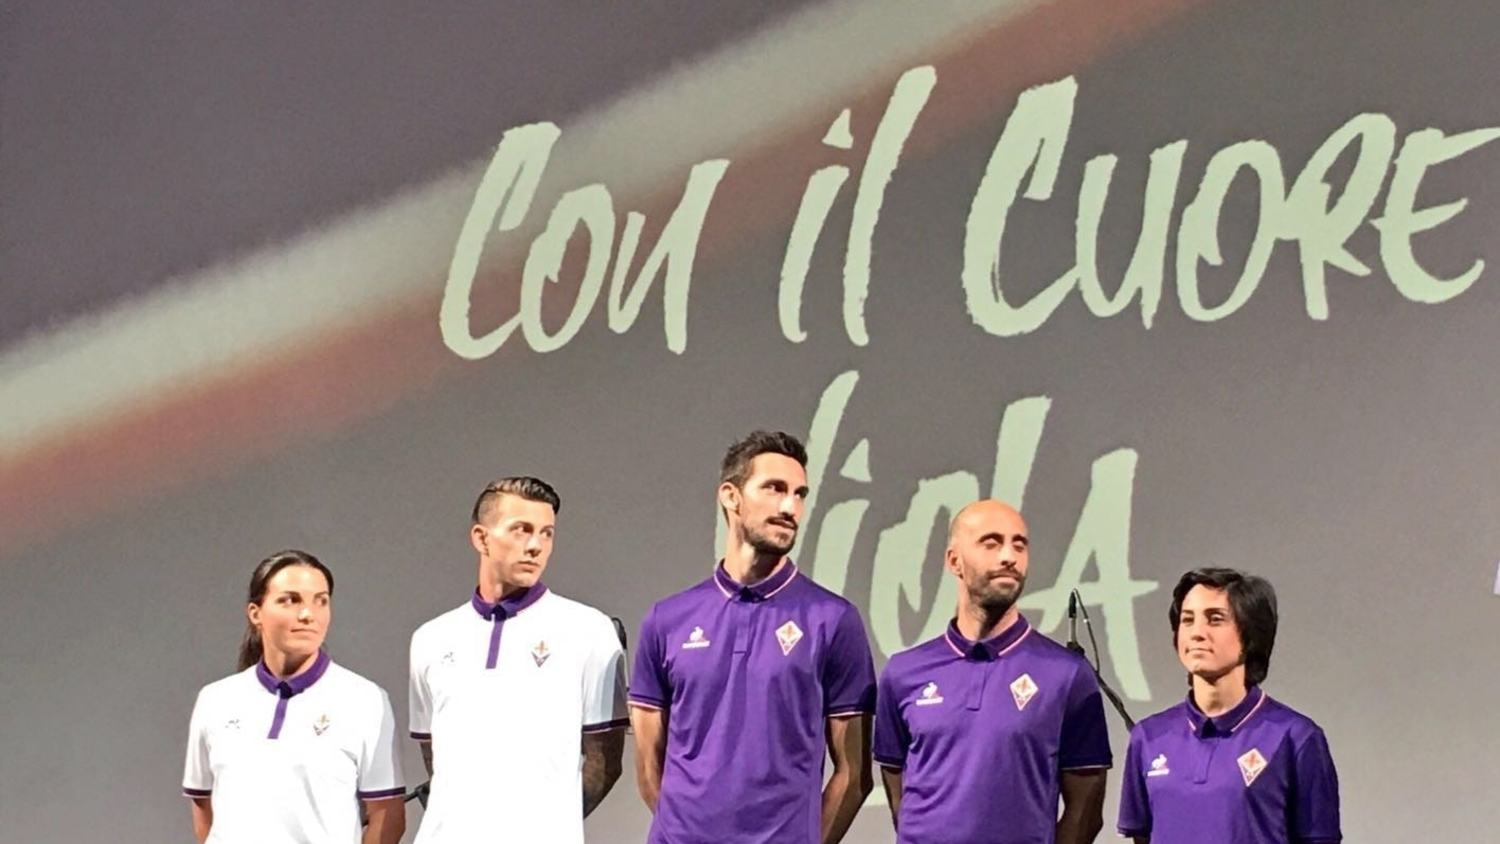 Fiorentina's Kit Launch was as Dope as the Kits themselves!